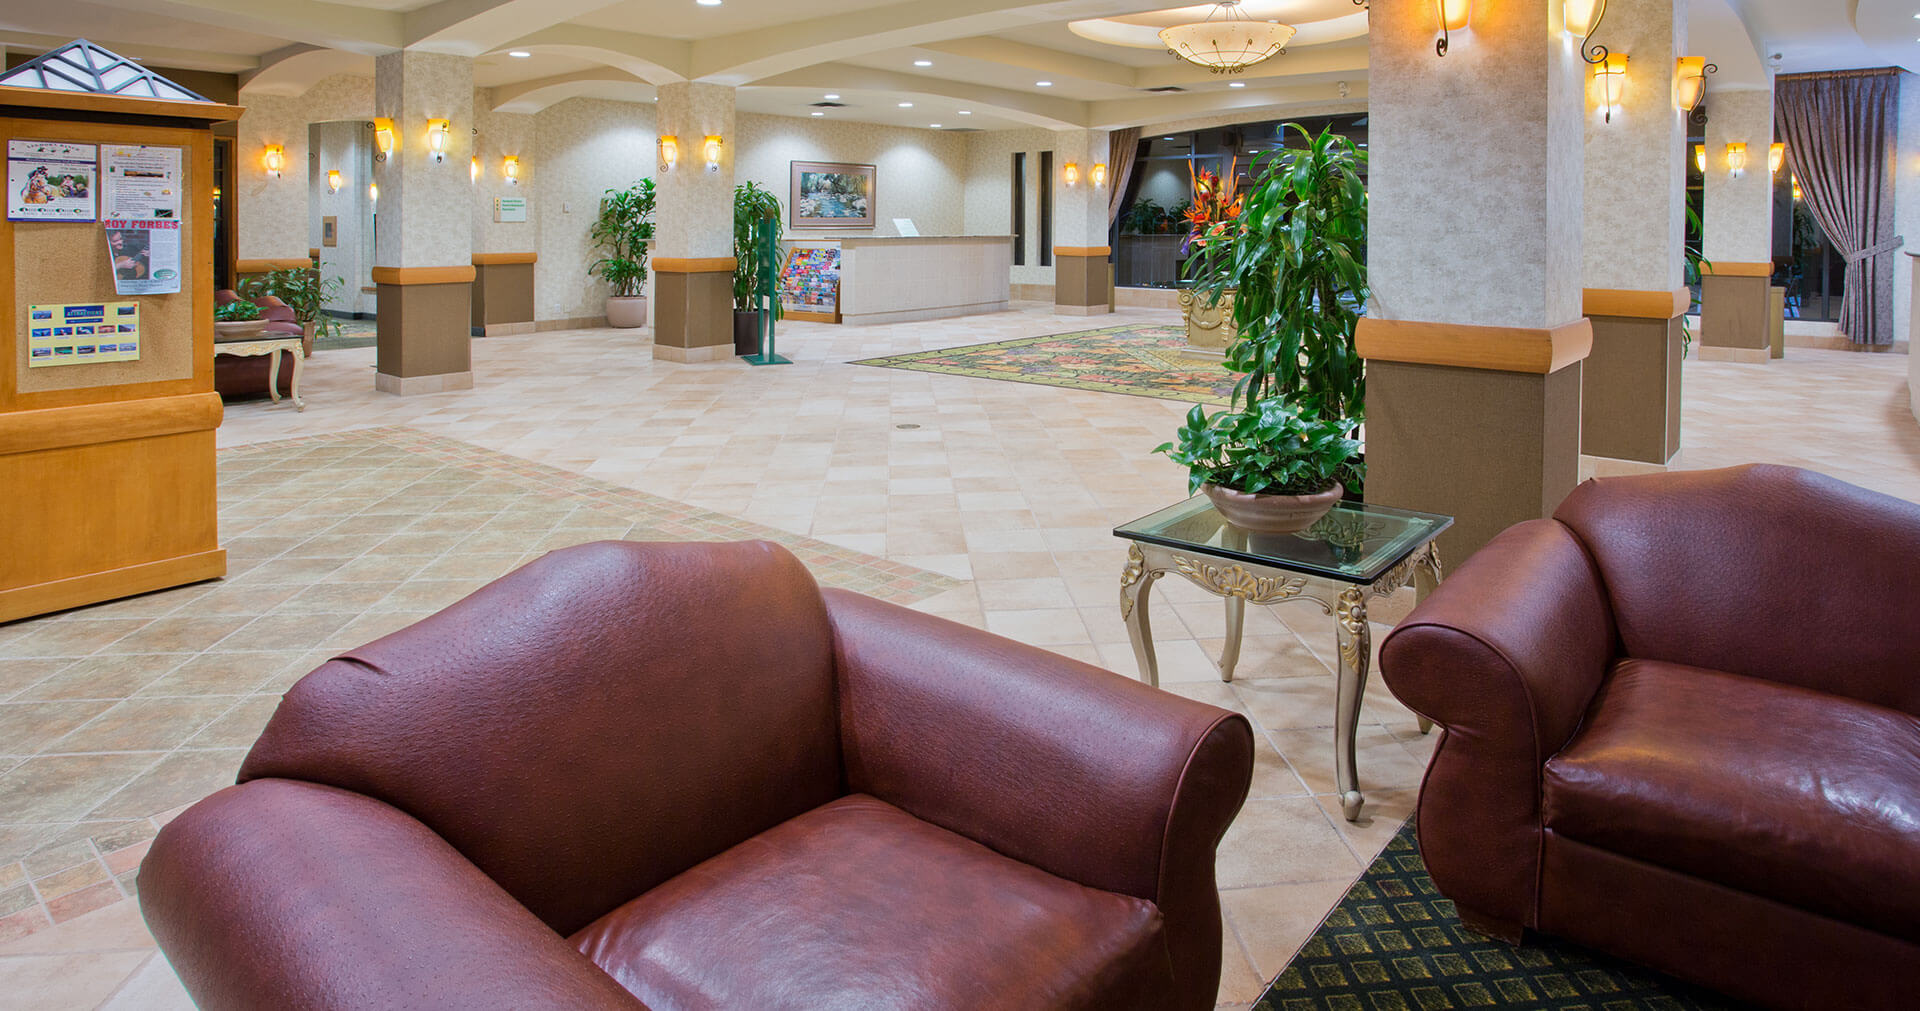 Hotel lobby of the Holiday Inn North Vancouver